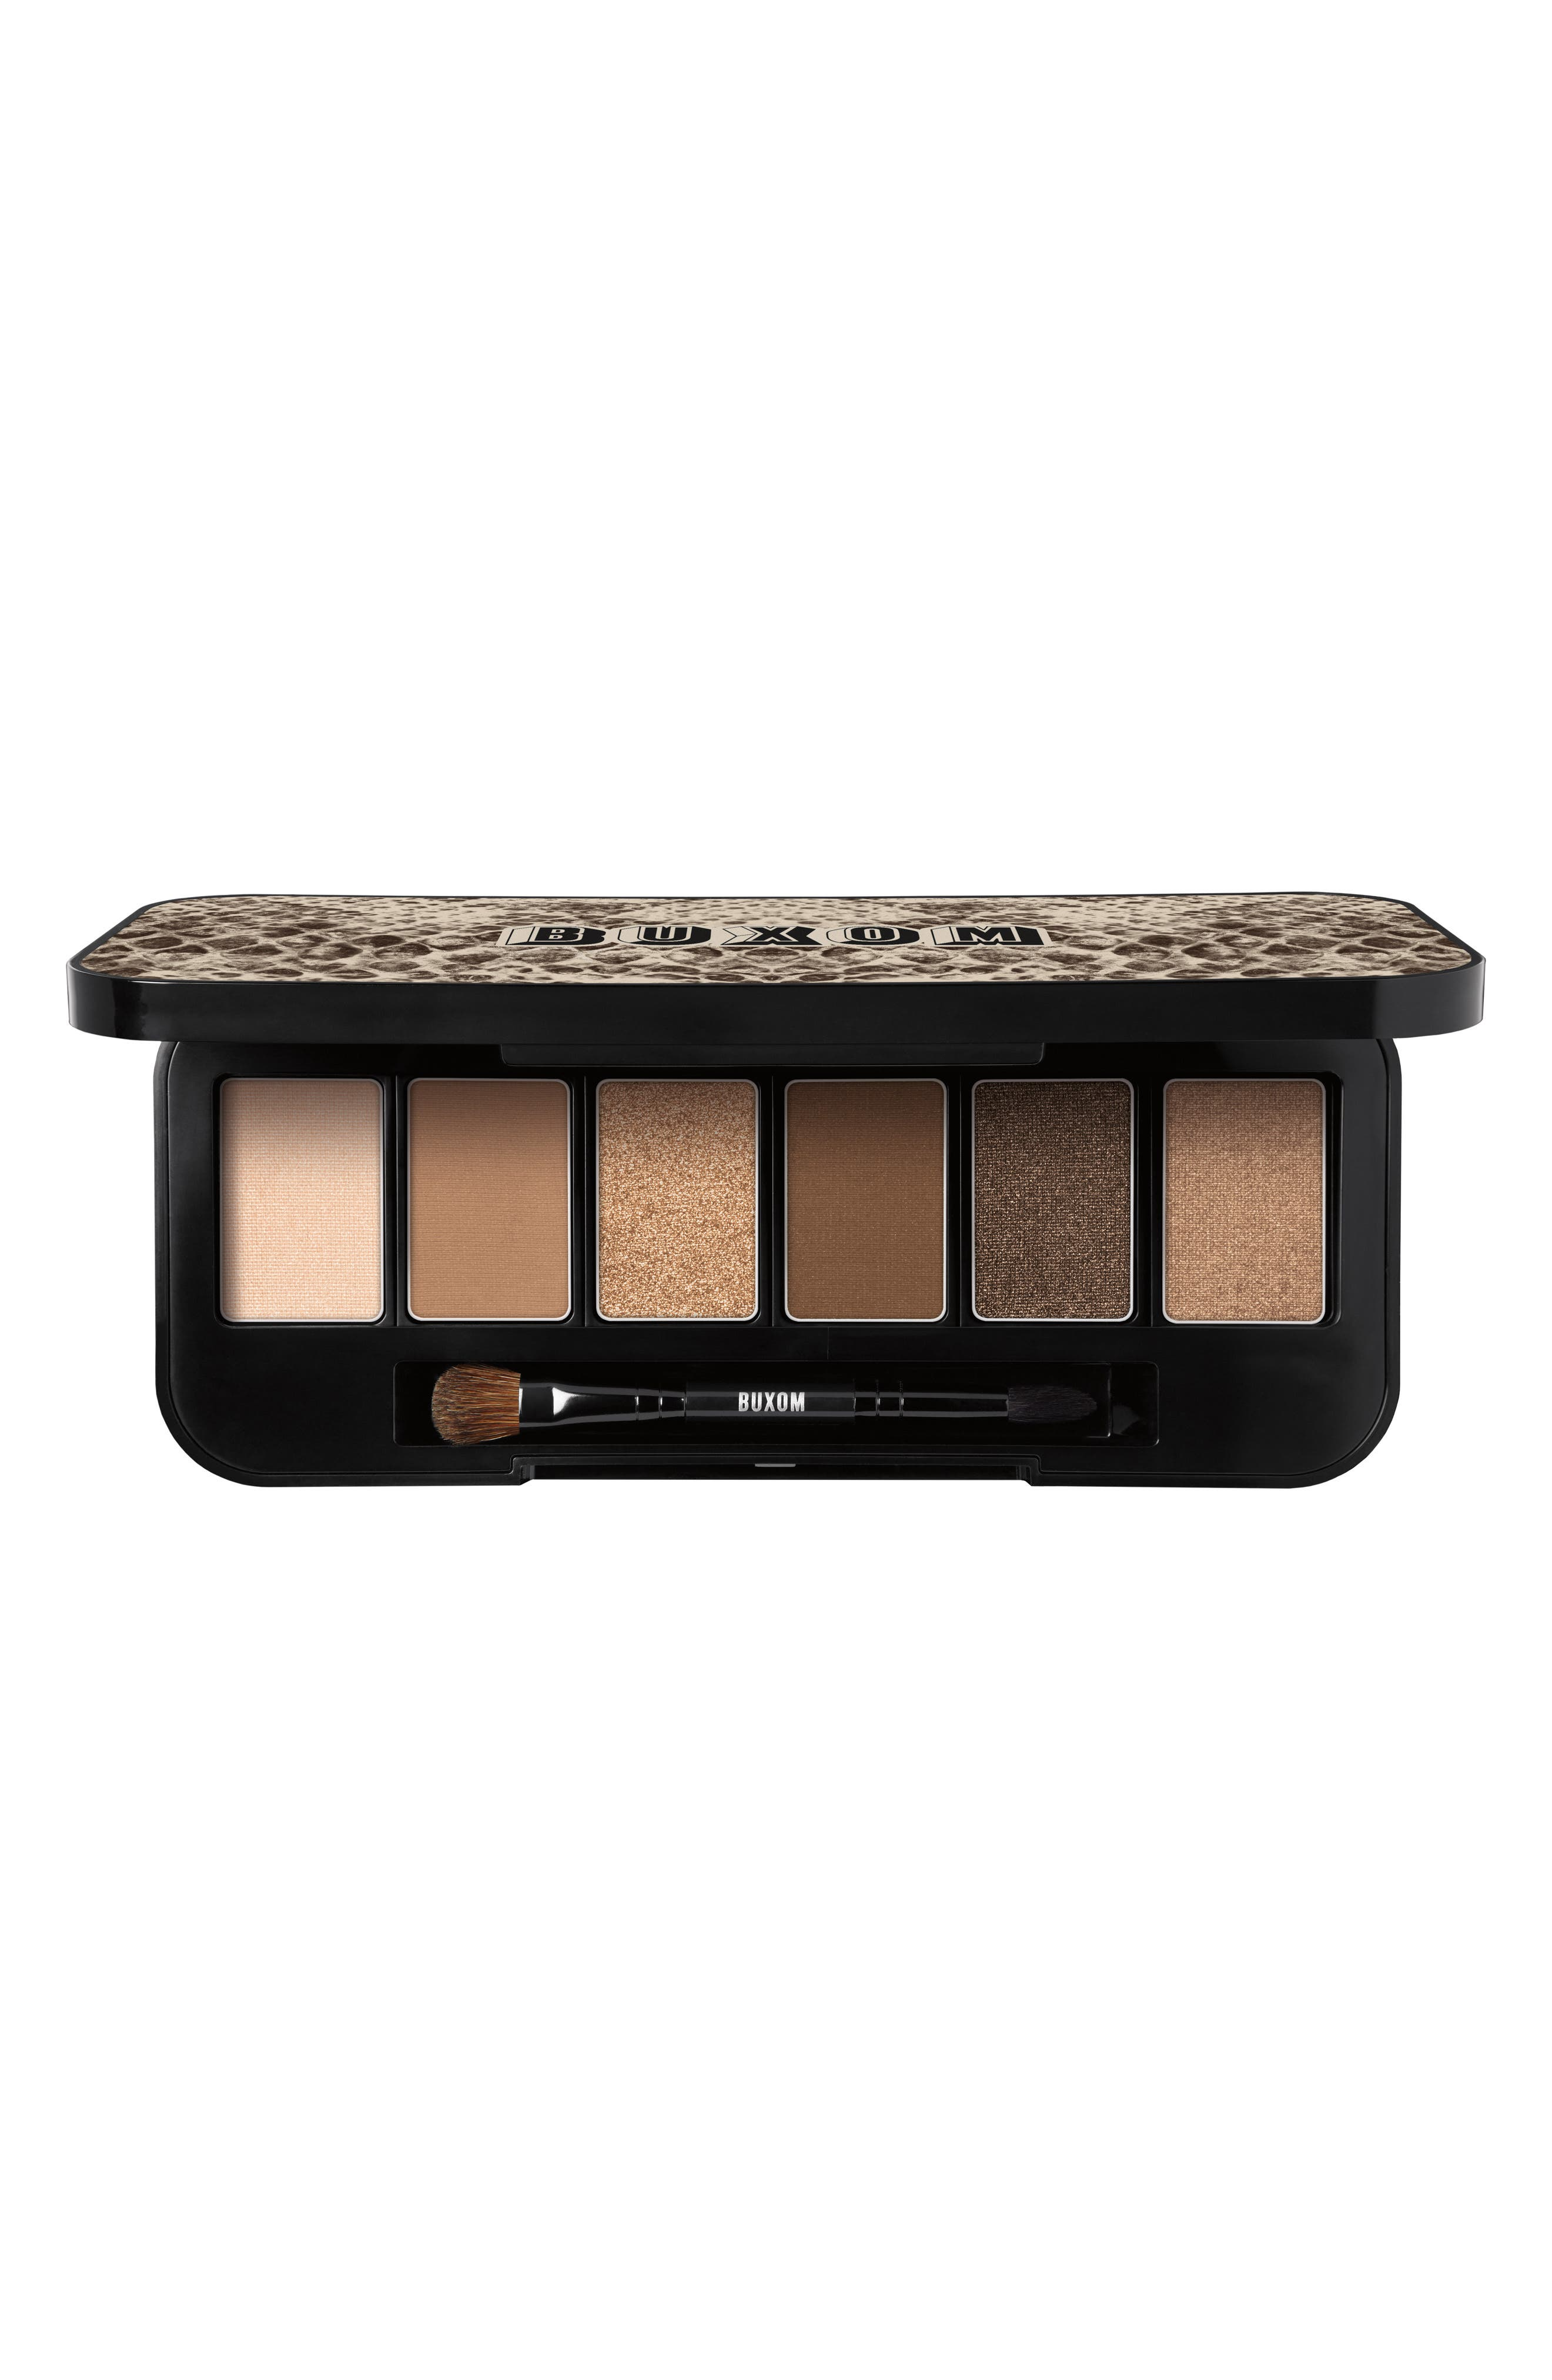 Buxom May Contain Nudity Eyeshadow Palette ($85 Value)